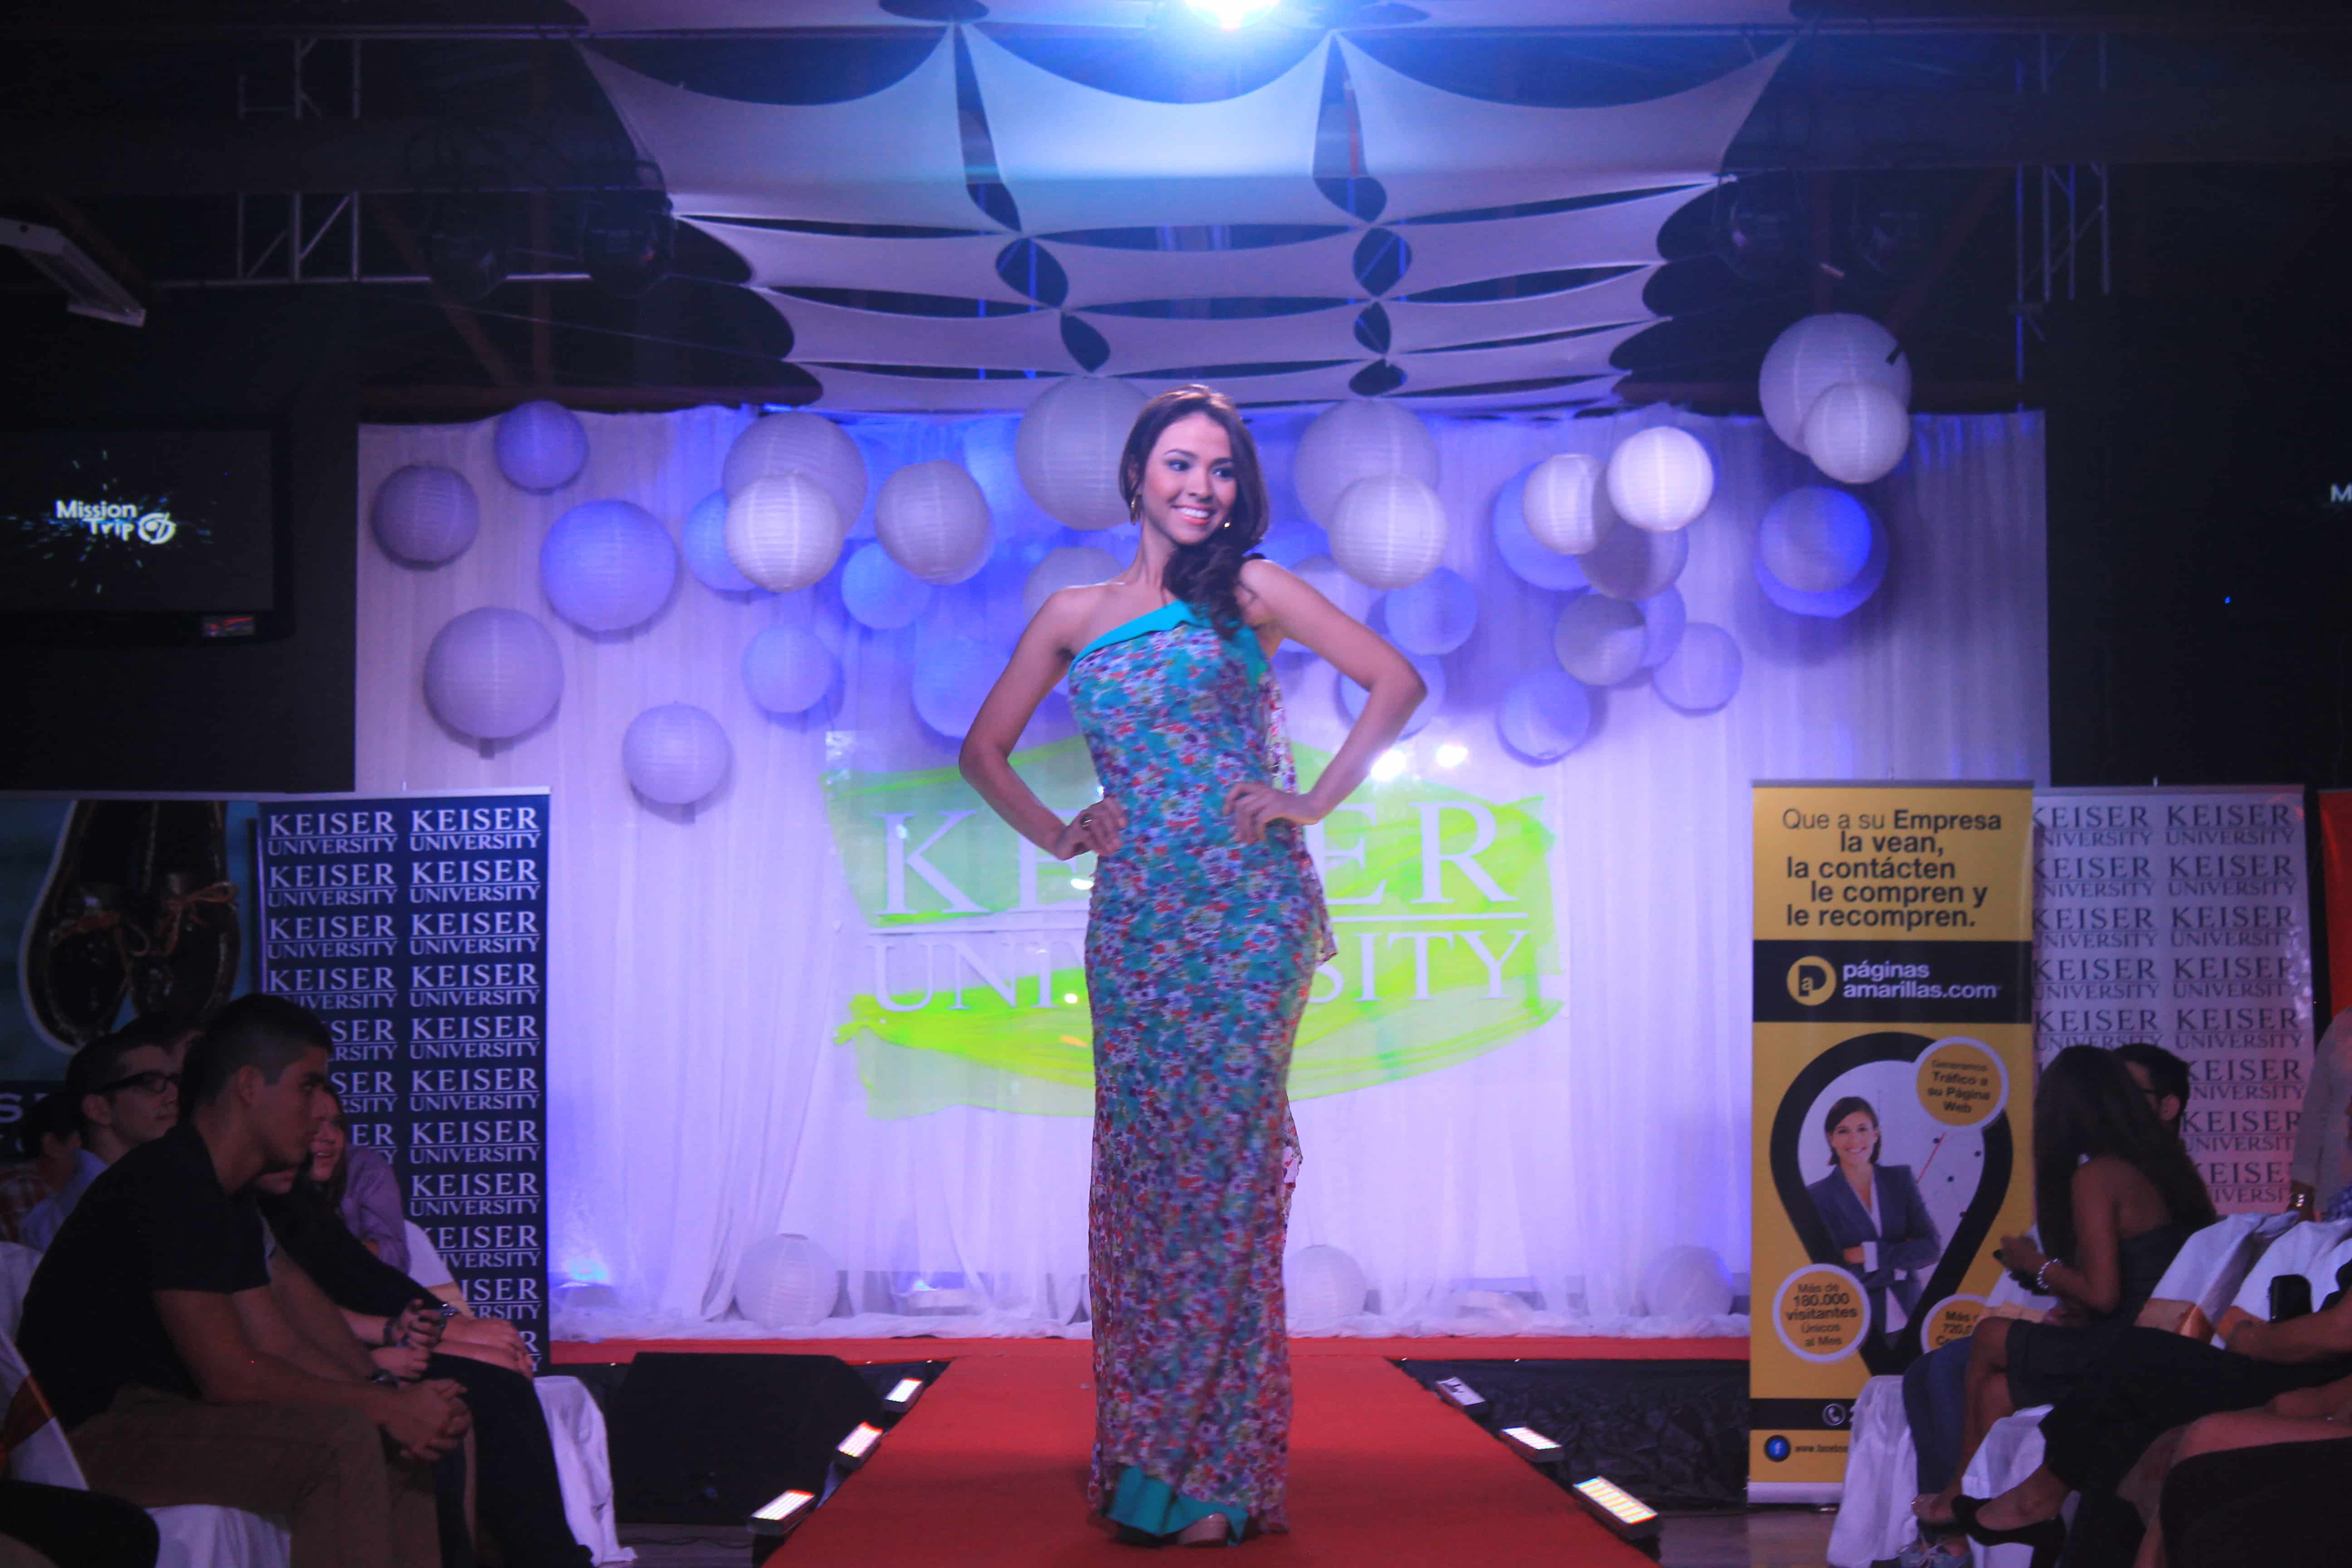 The Latin American Campus Hosts Florals Runway for a Cause 2014